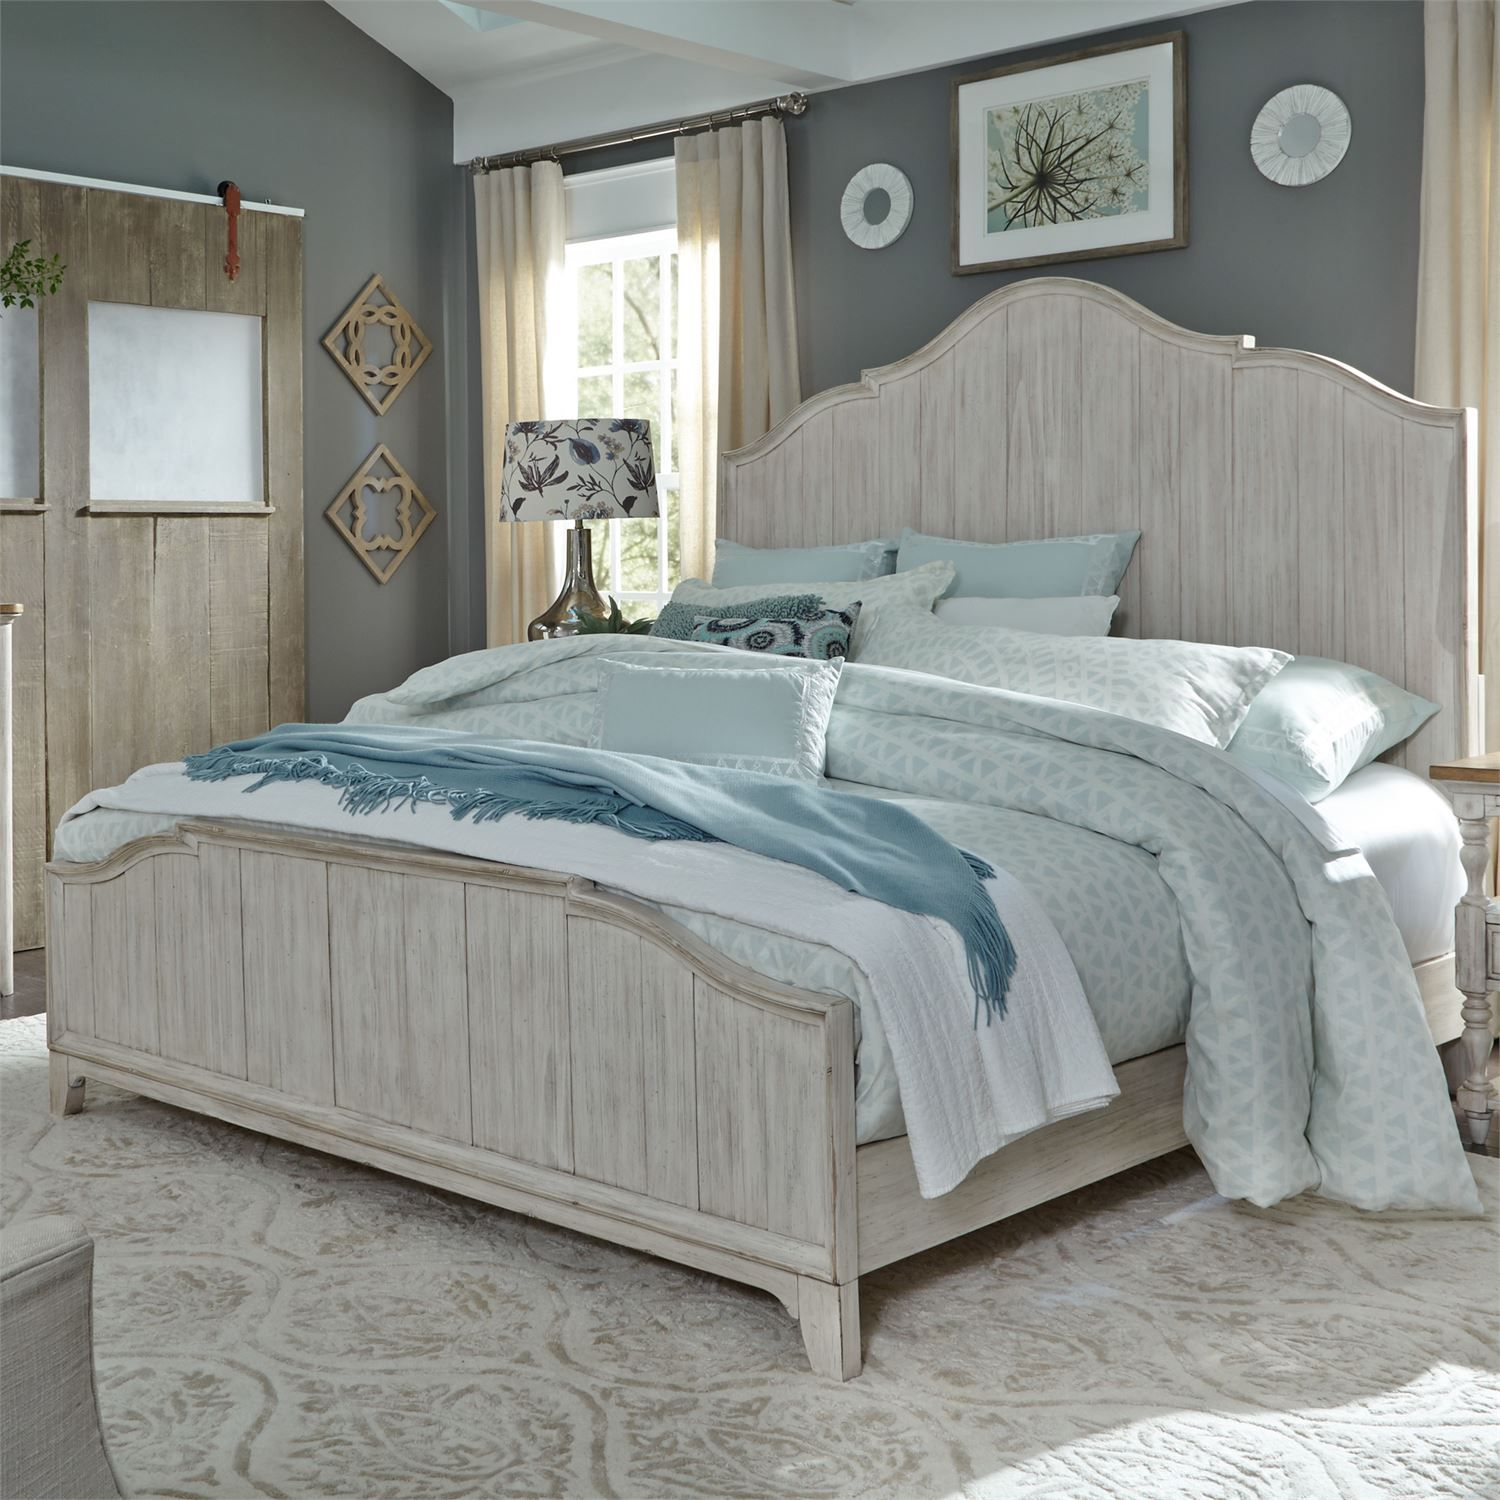 Queen Panel Bed by Liberty Furniture. Liberty Furniture is